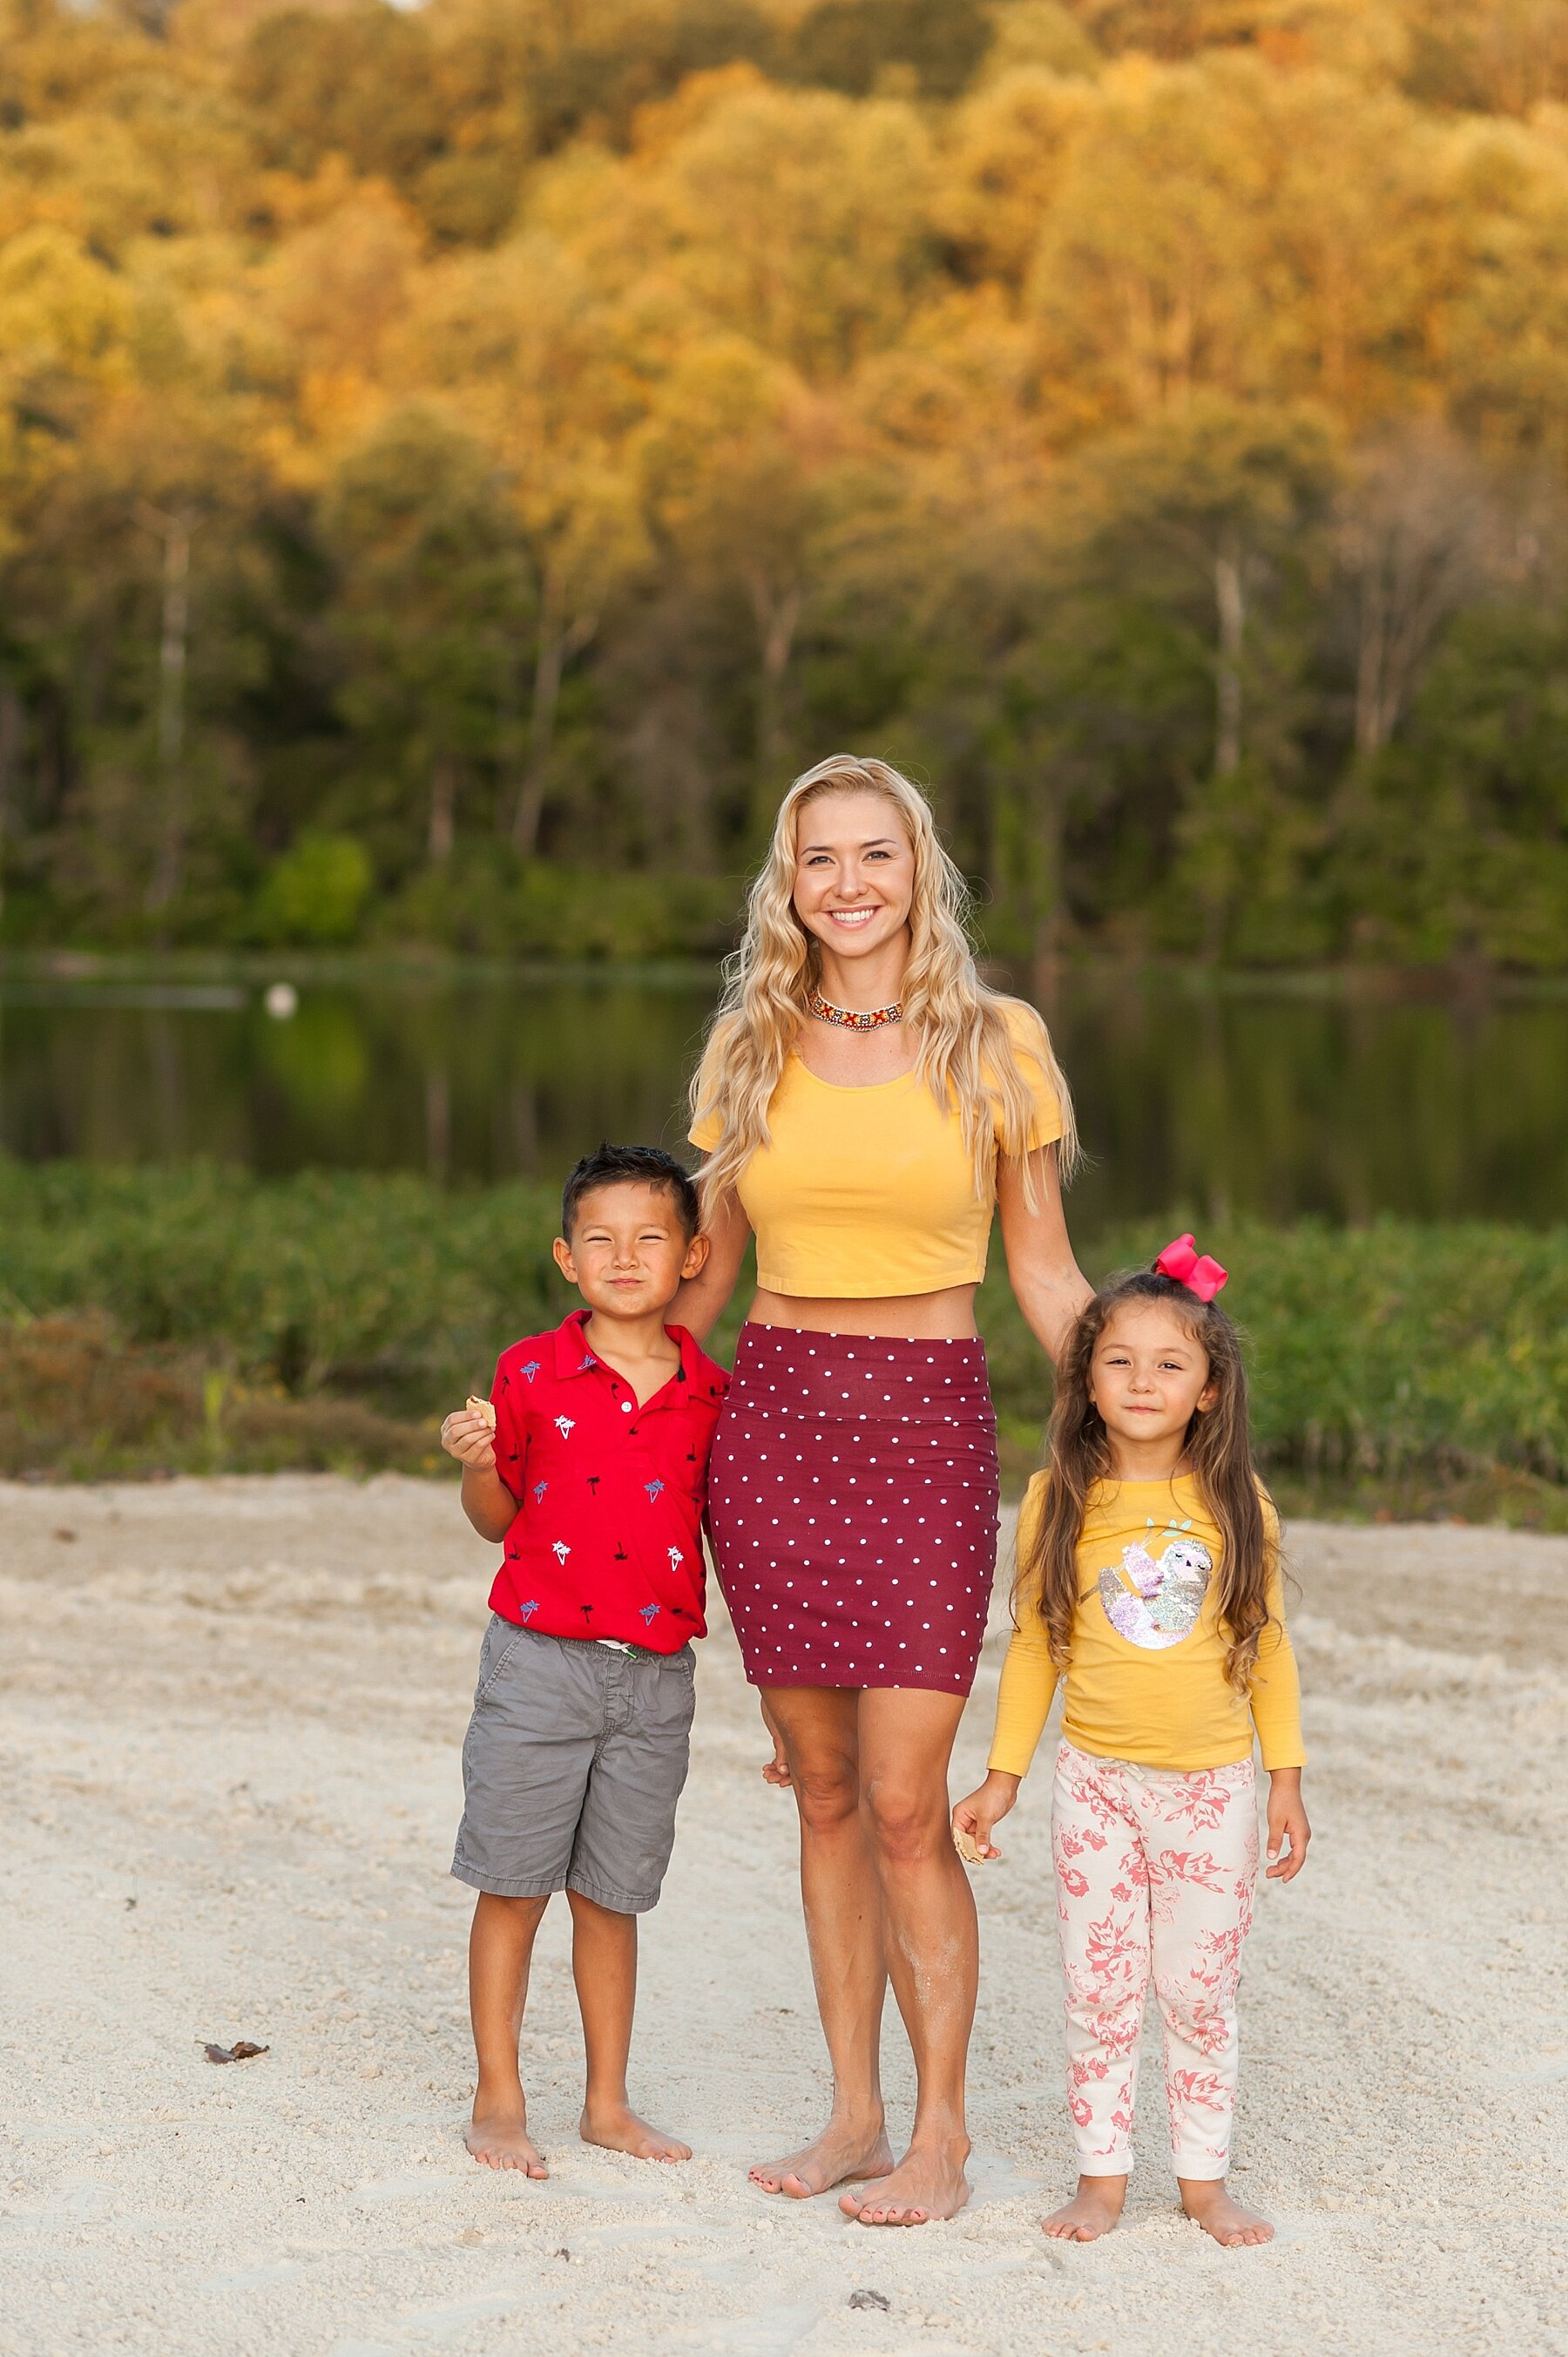 Wendy Zook Photography, Frederick MD family photos, Lake Linganore family photos, Lake Linganore, beach family photos, Frederick Maryland family session, Maryland photos, Maryland family photographer